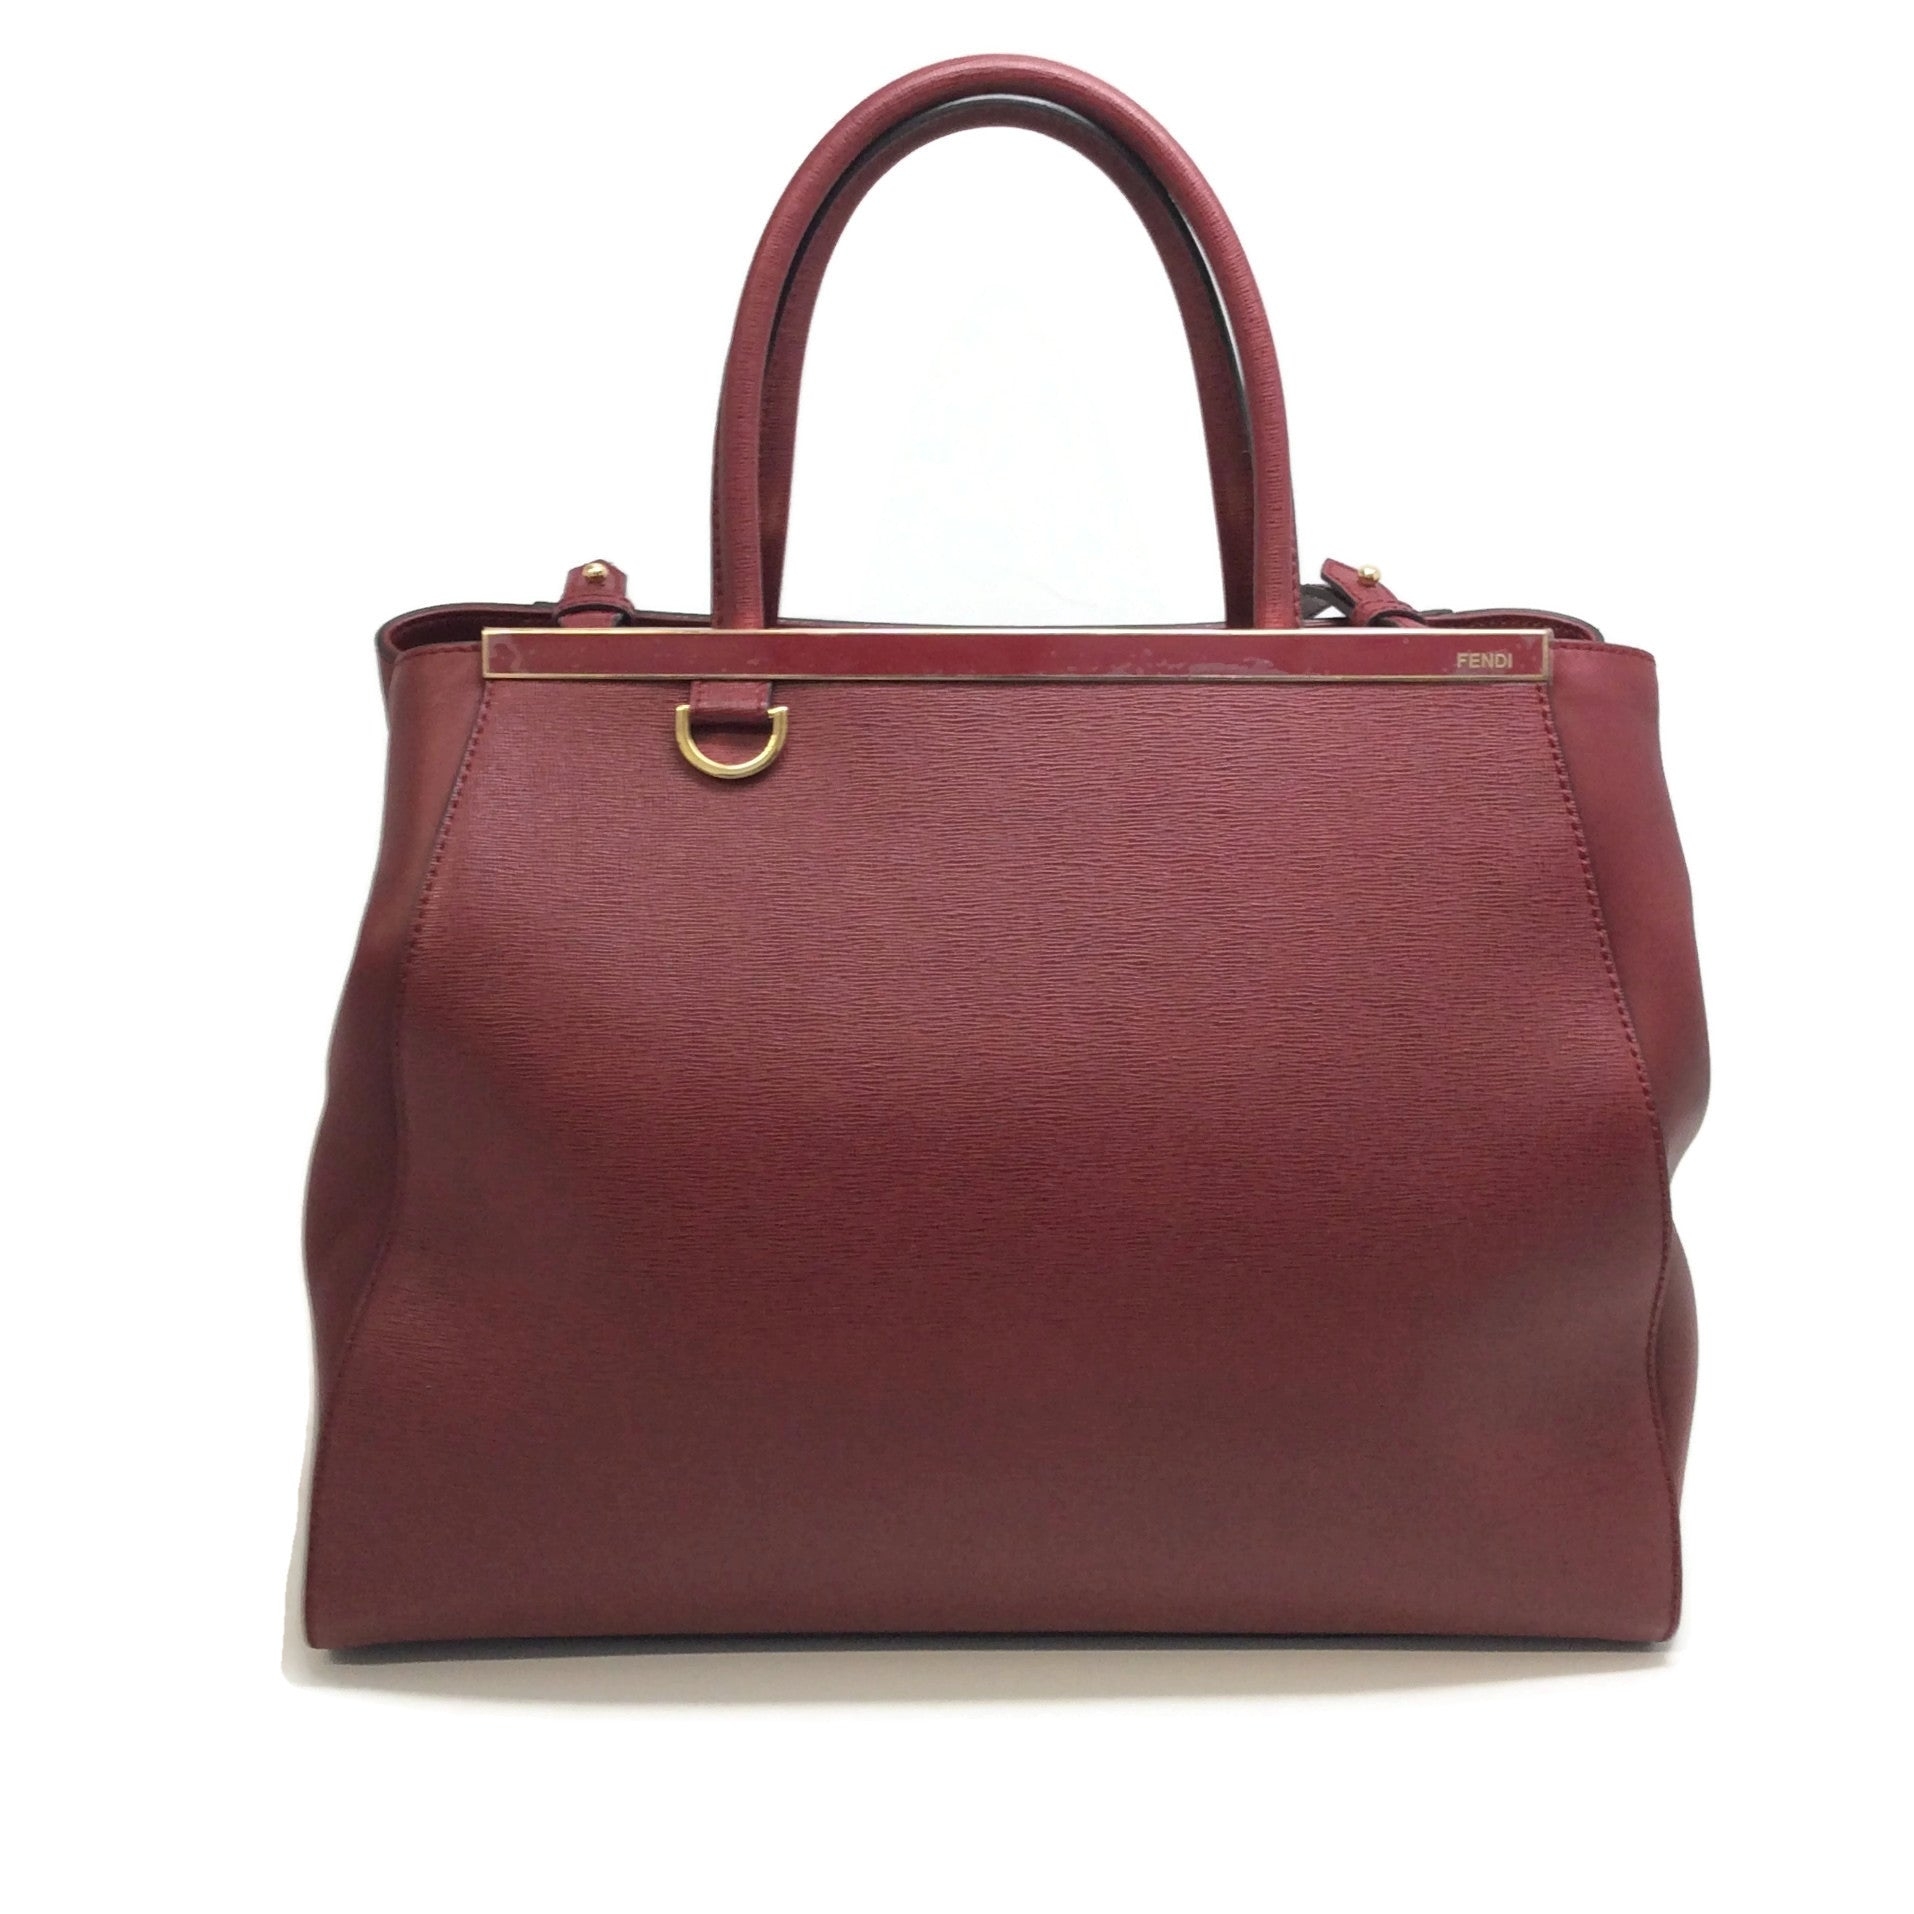 Fendi Medium 2 Jour Oxblood Leather Tote